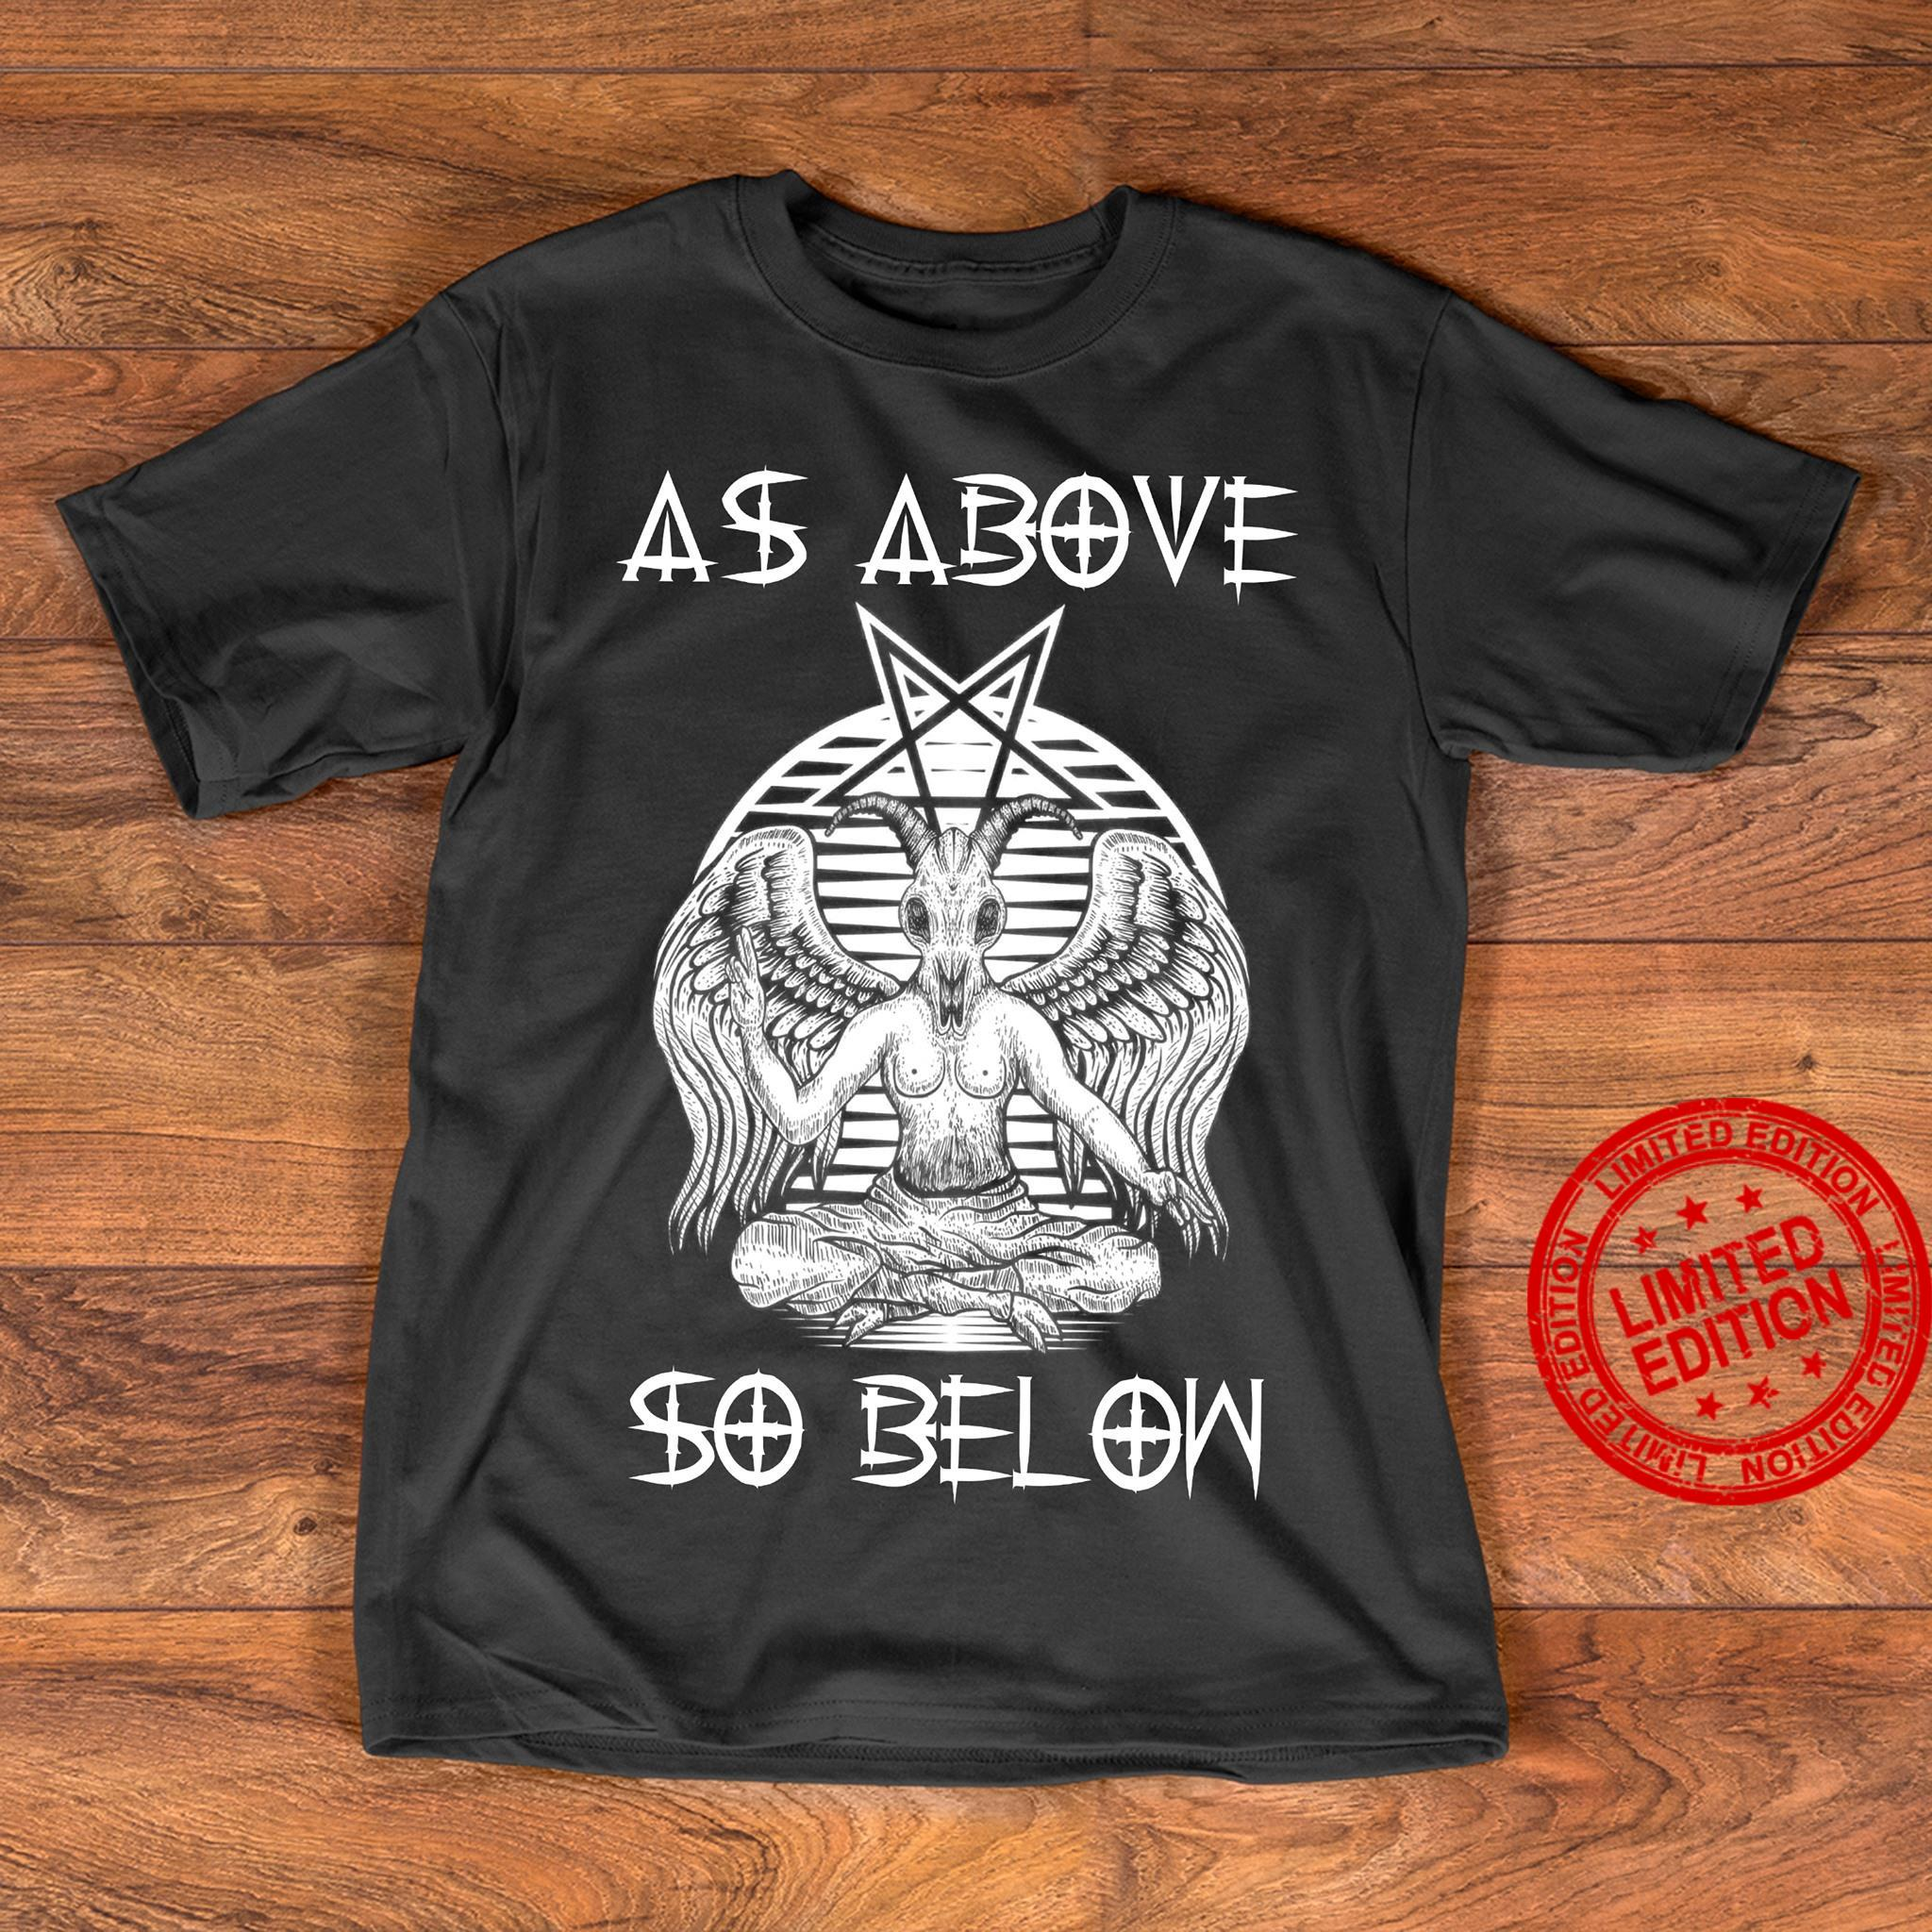 As Above So Bel Ow Shirt